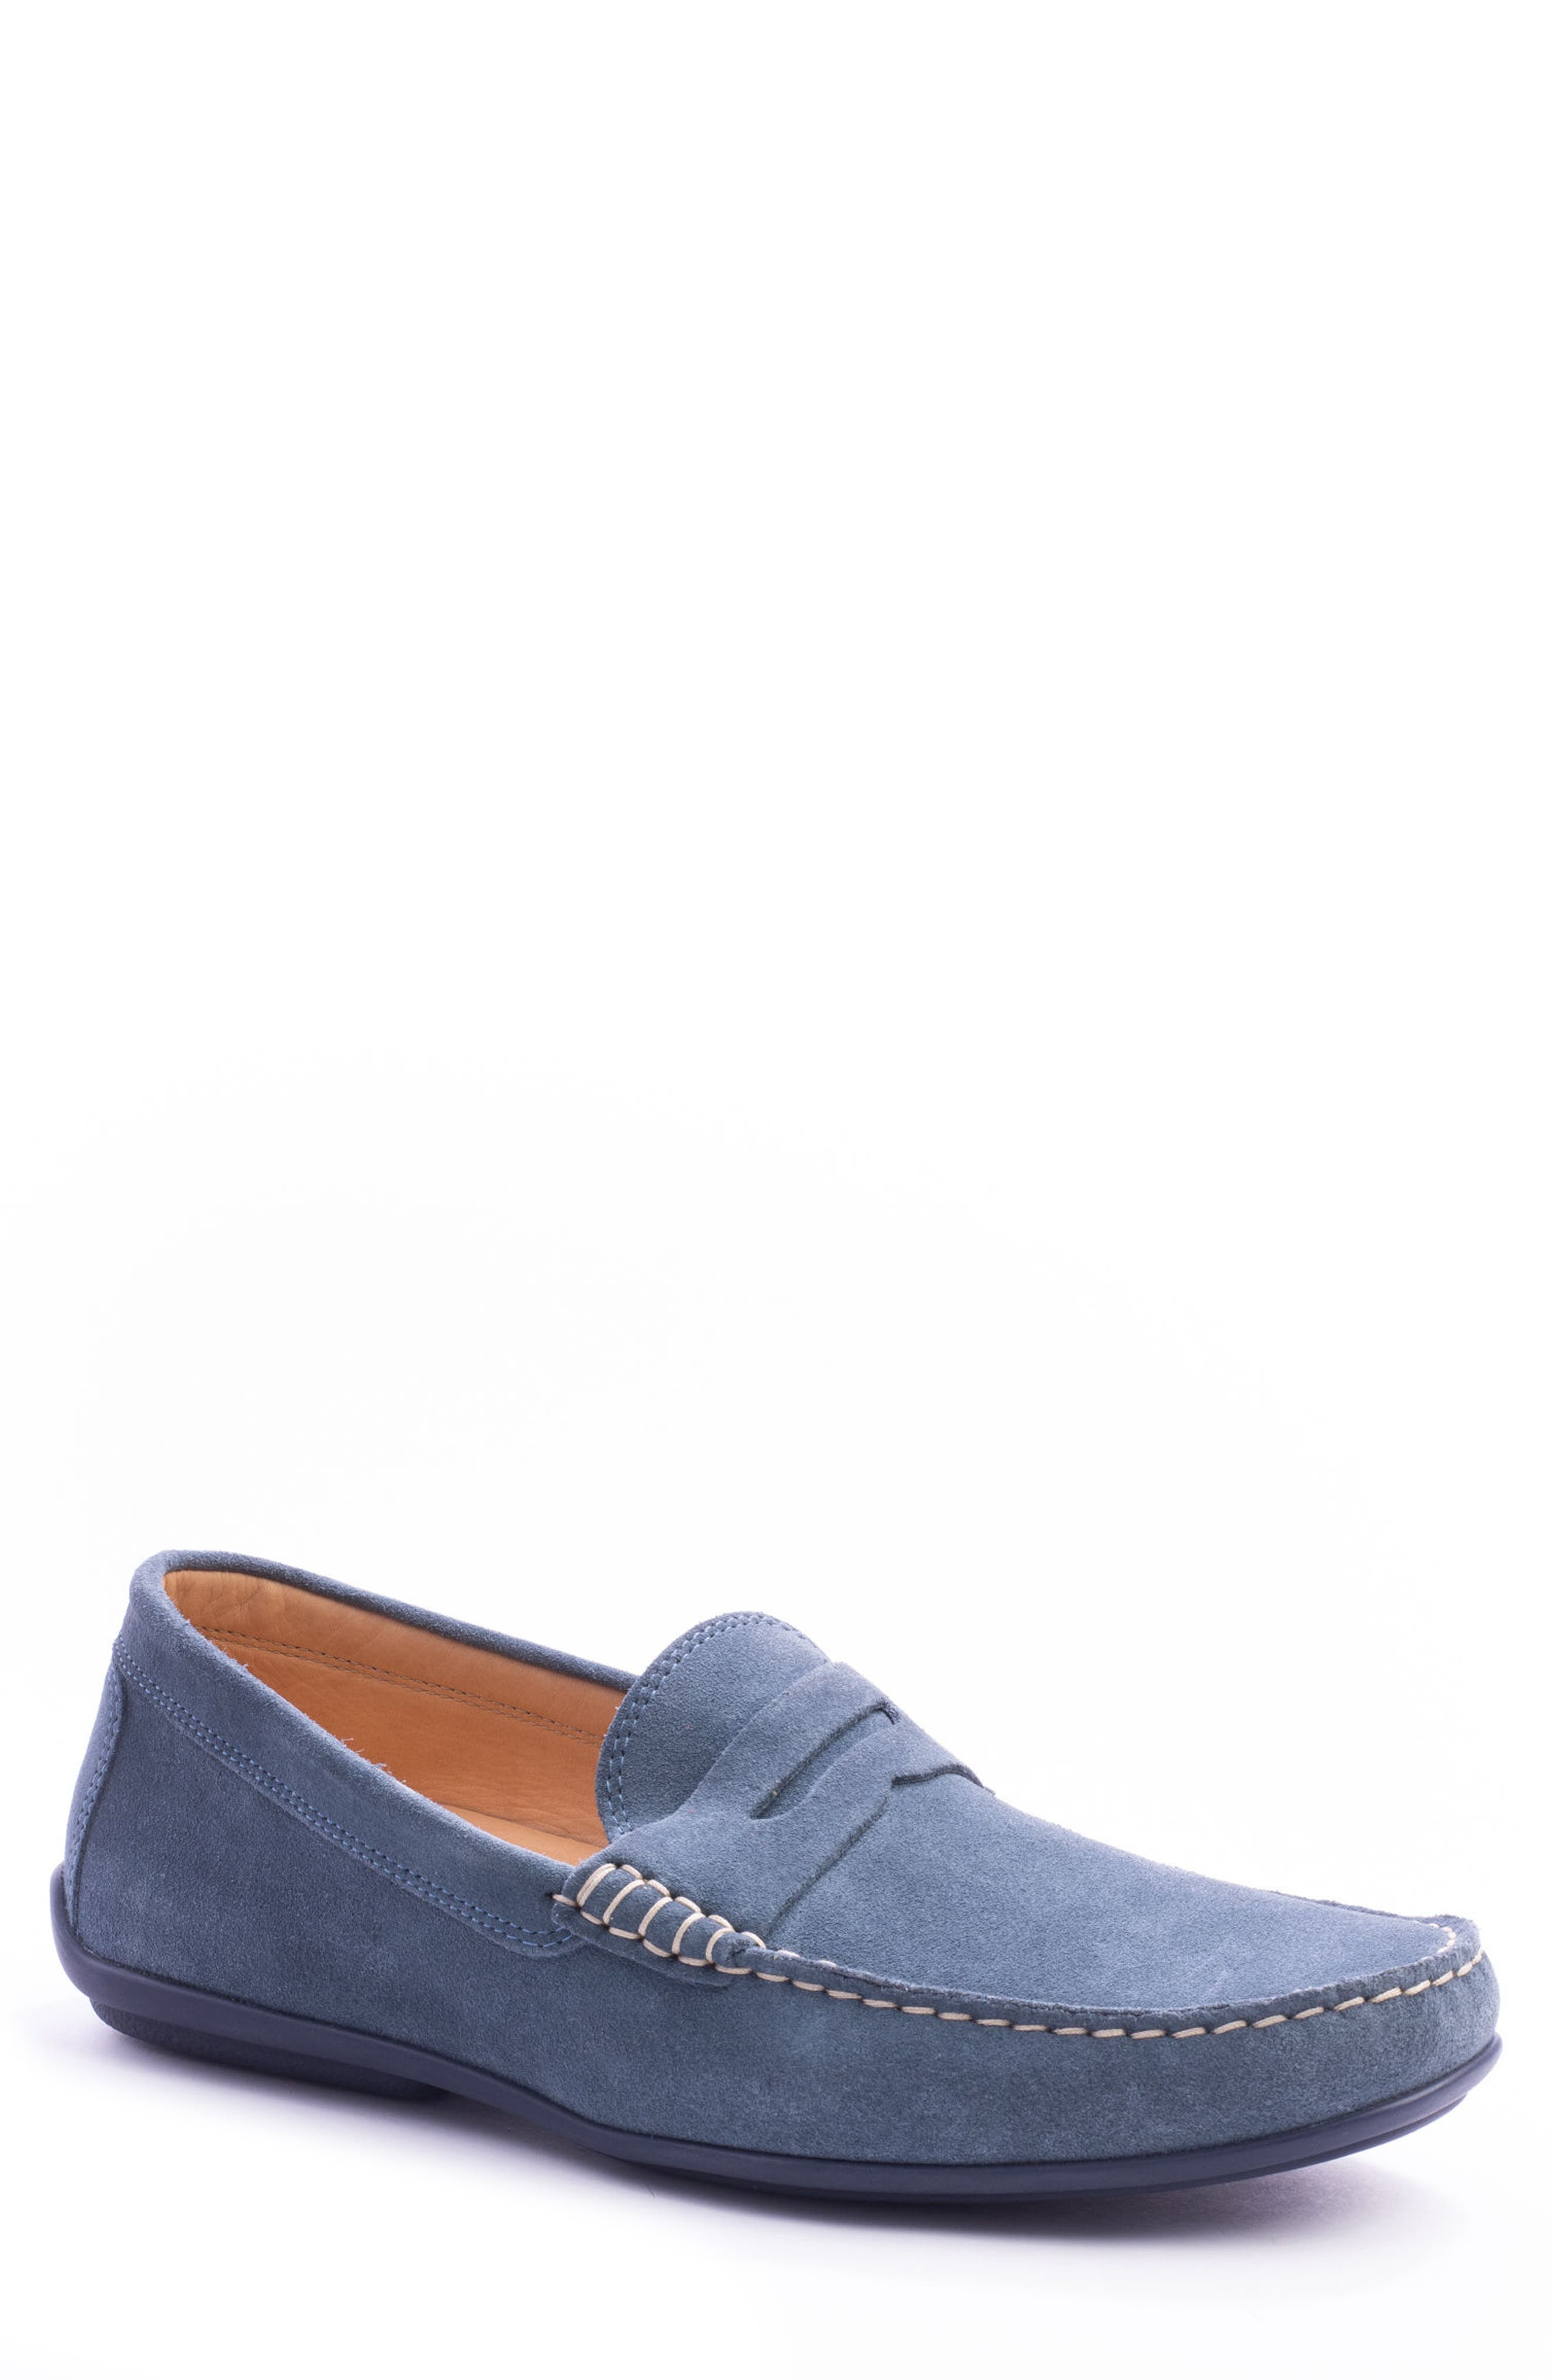 'Parkers' Penny Loafer,                             Main thumbnail 1, color,                             Indigo